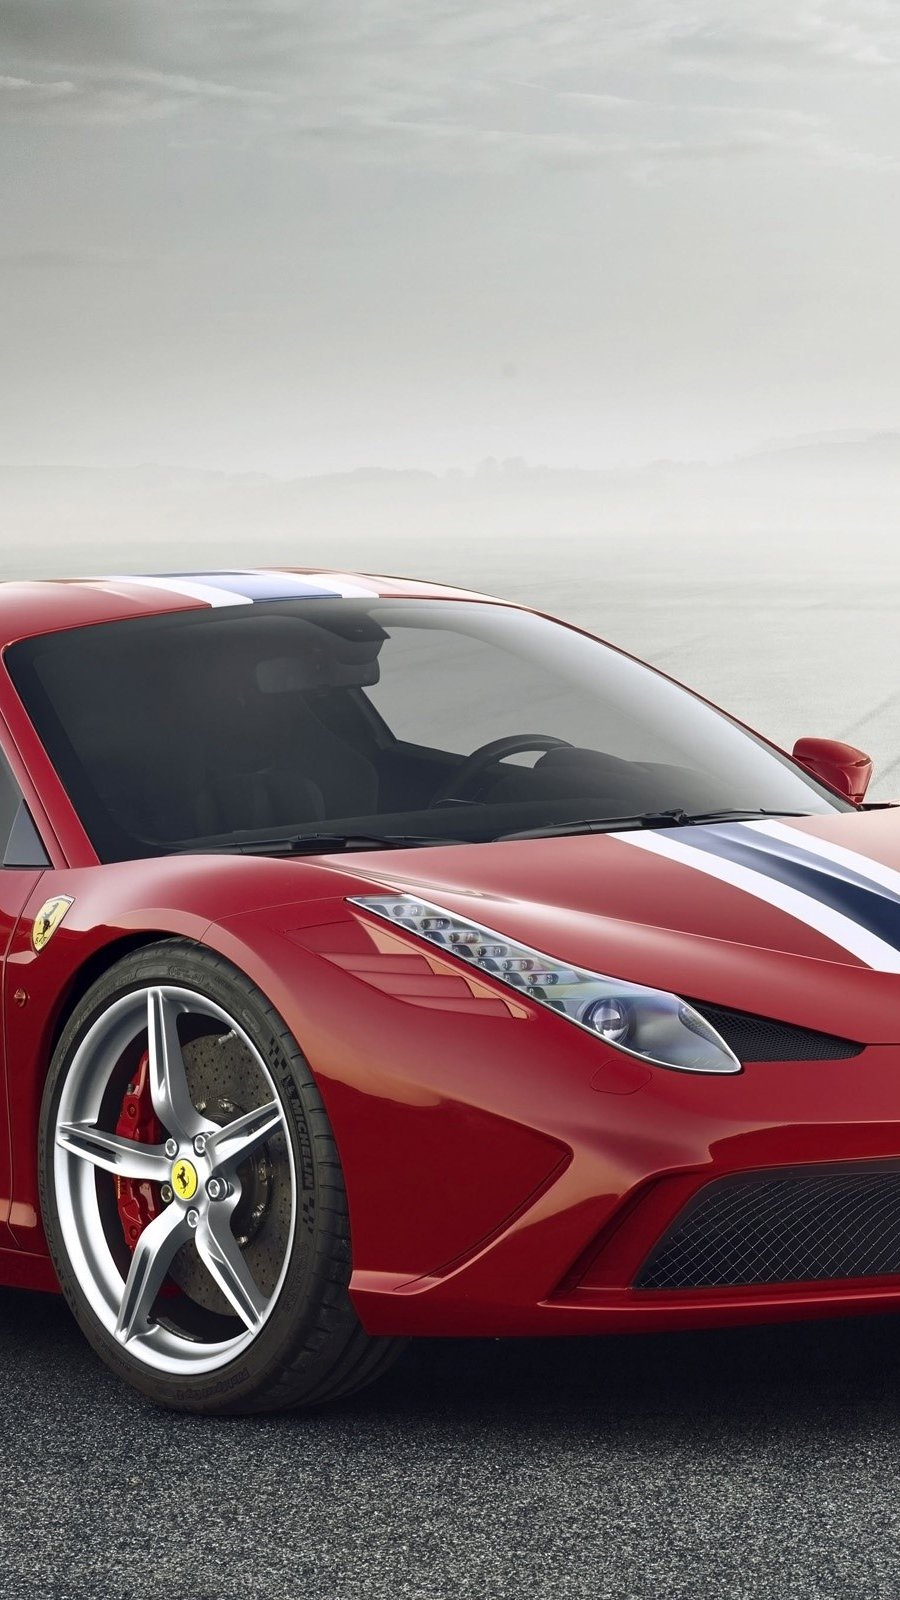 Wallpaper Ferrari 458 Speciale Vertical